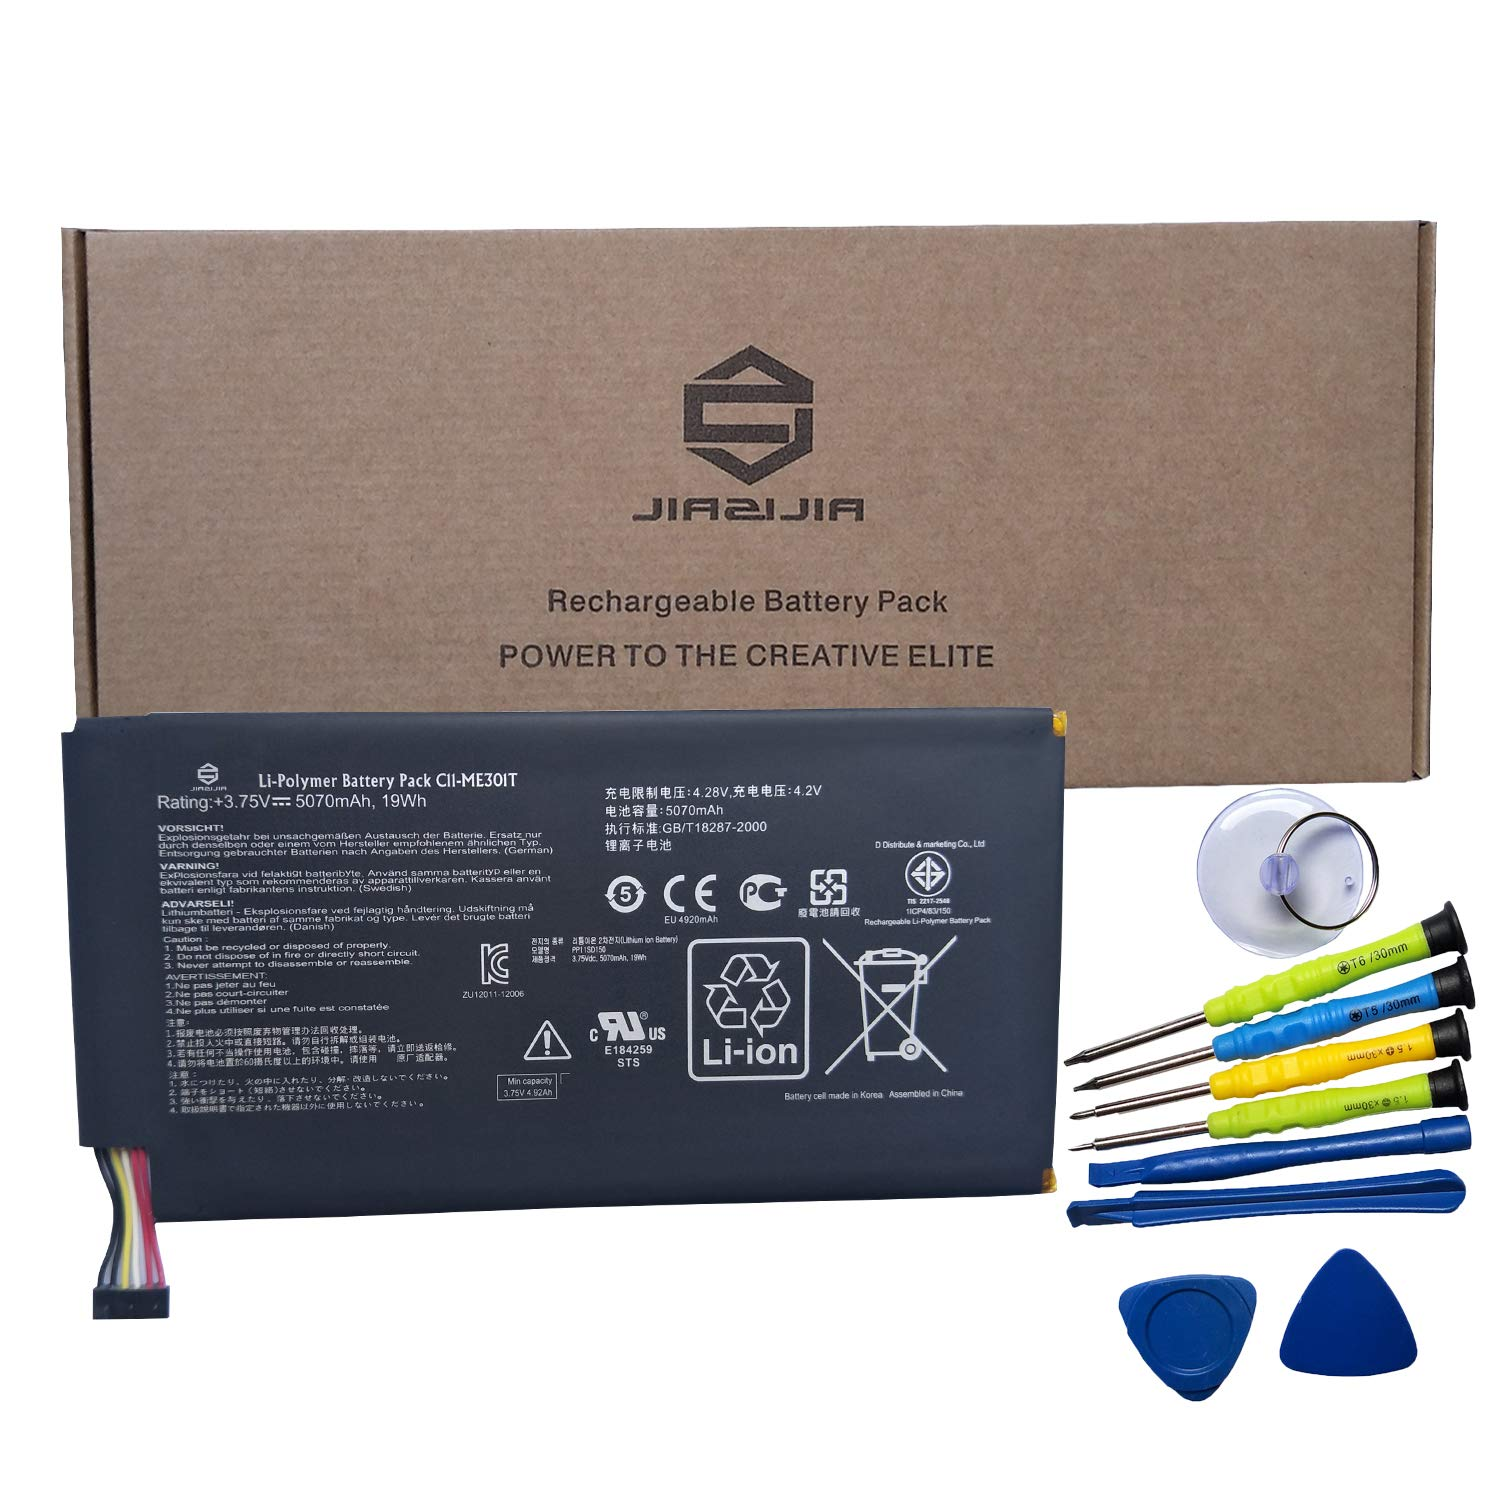 JIAZIJIA C11-ME301T Laptop Battery Replacement for Asus Memo Pad Smart K001 10.1 inch Tablet Series Notebook ME3PY23 with Tools Black 3.75V 19Wh 5070mAh